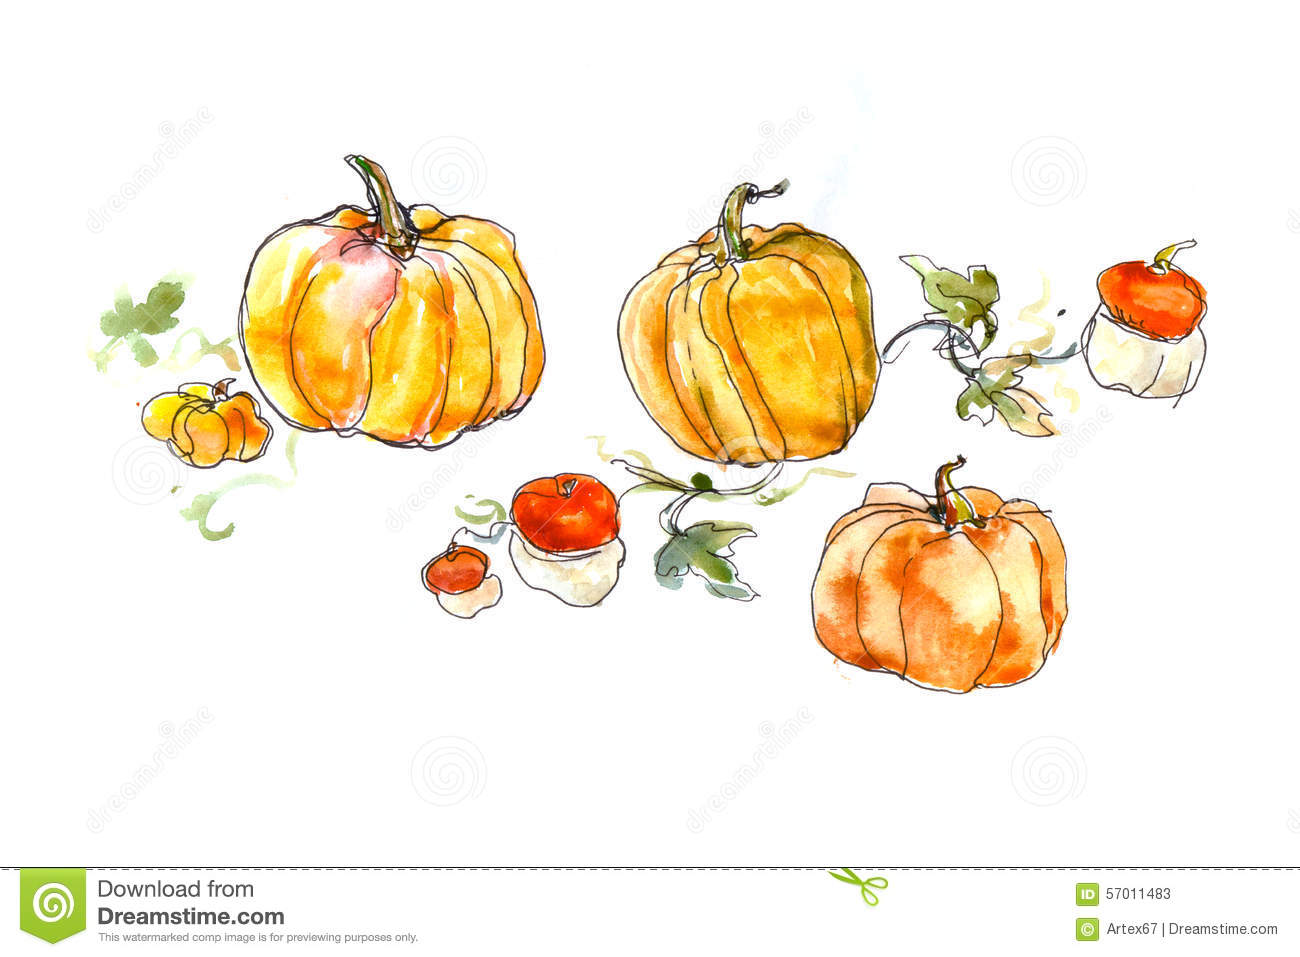 Watercolor Still Life Of A Pumpkin With Leaves Stock